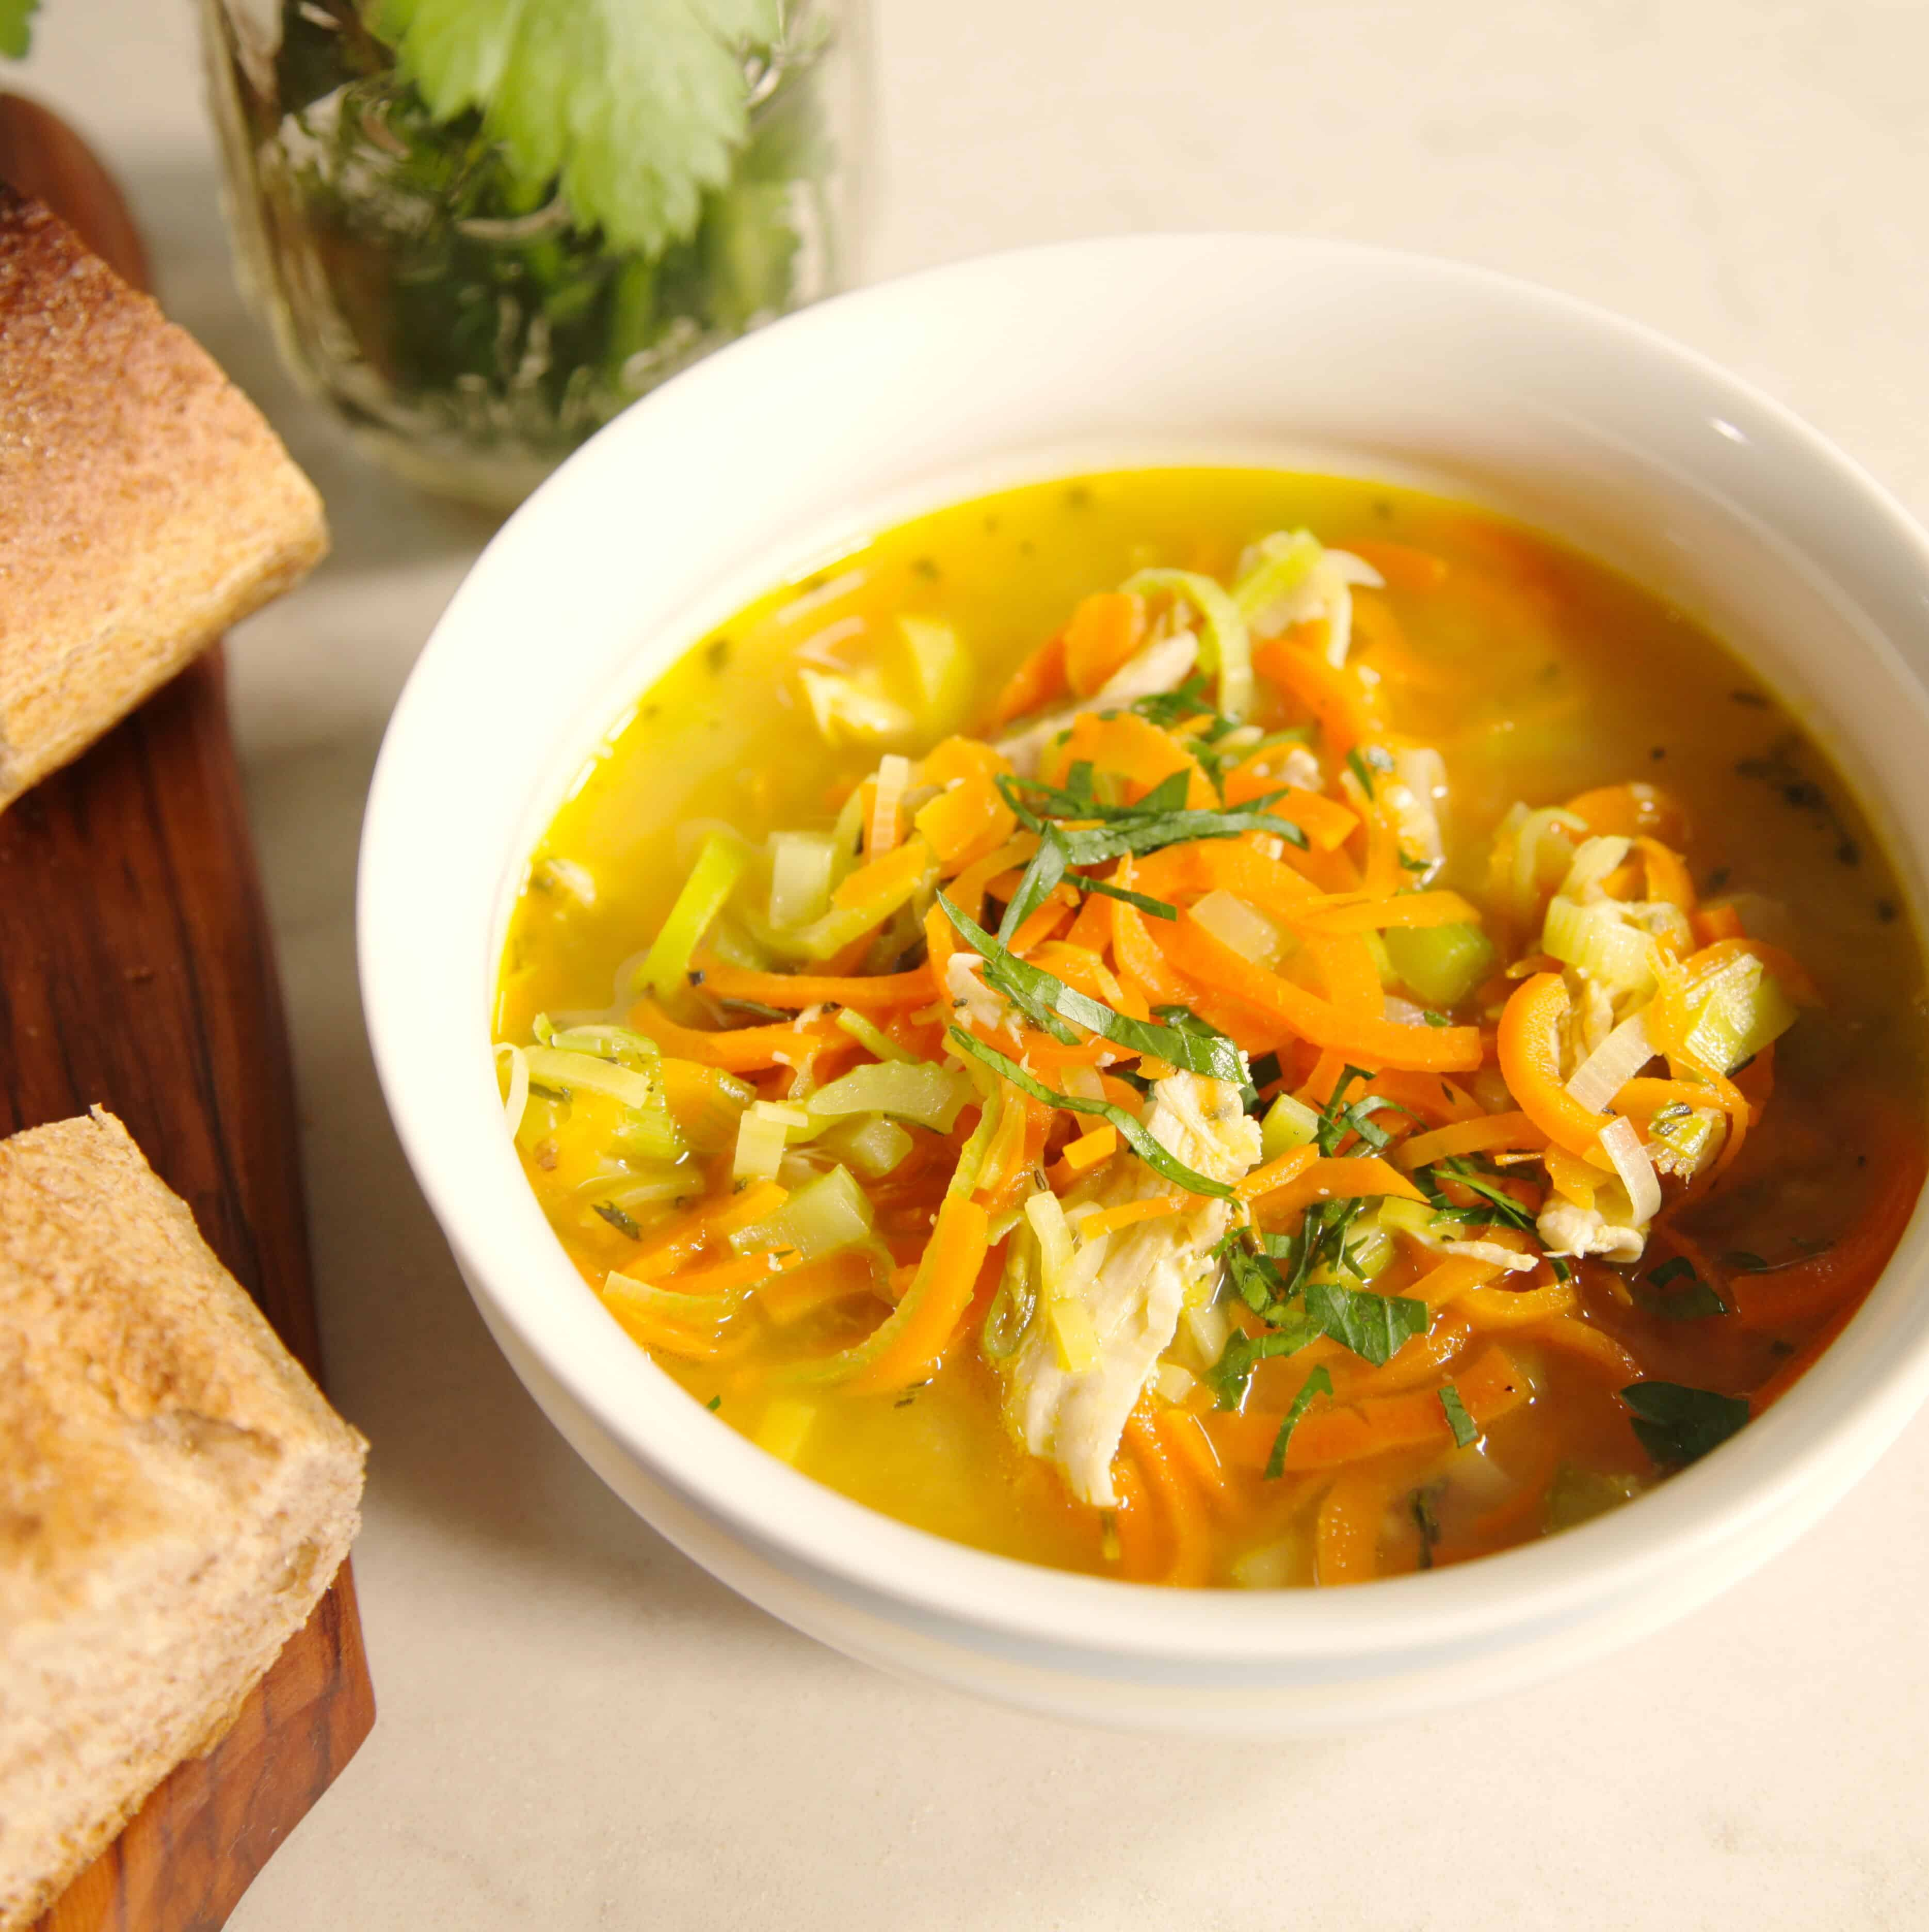 Chicken and Leek Soup with Carrot Noodles